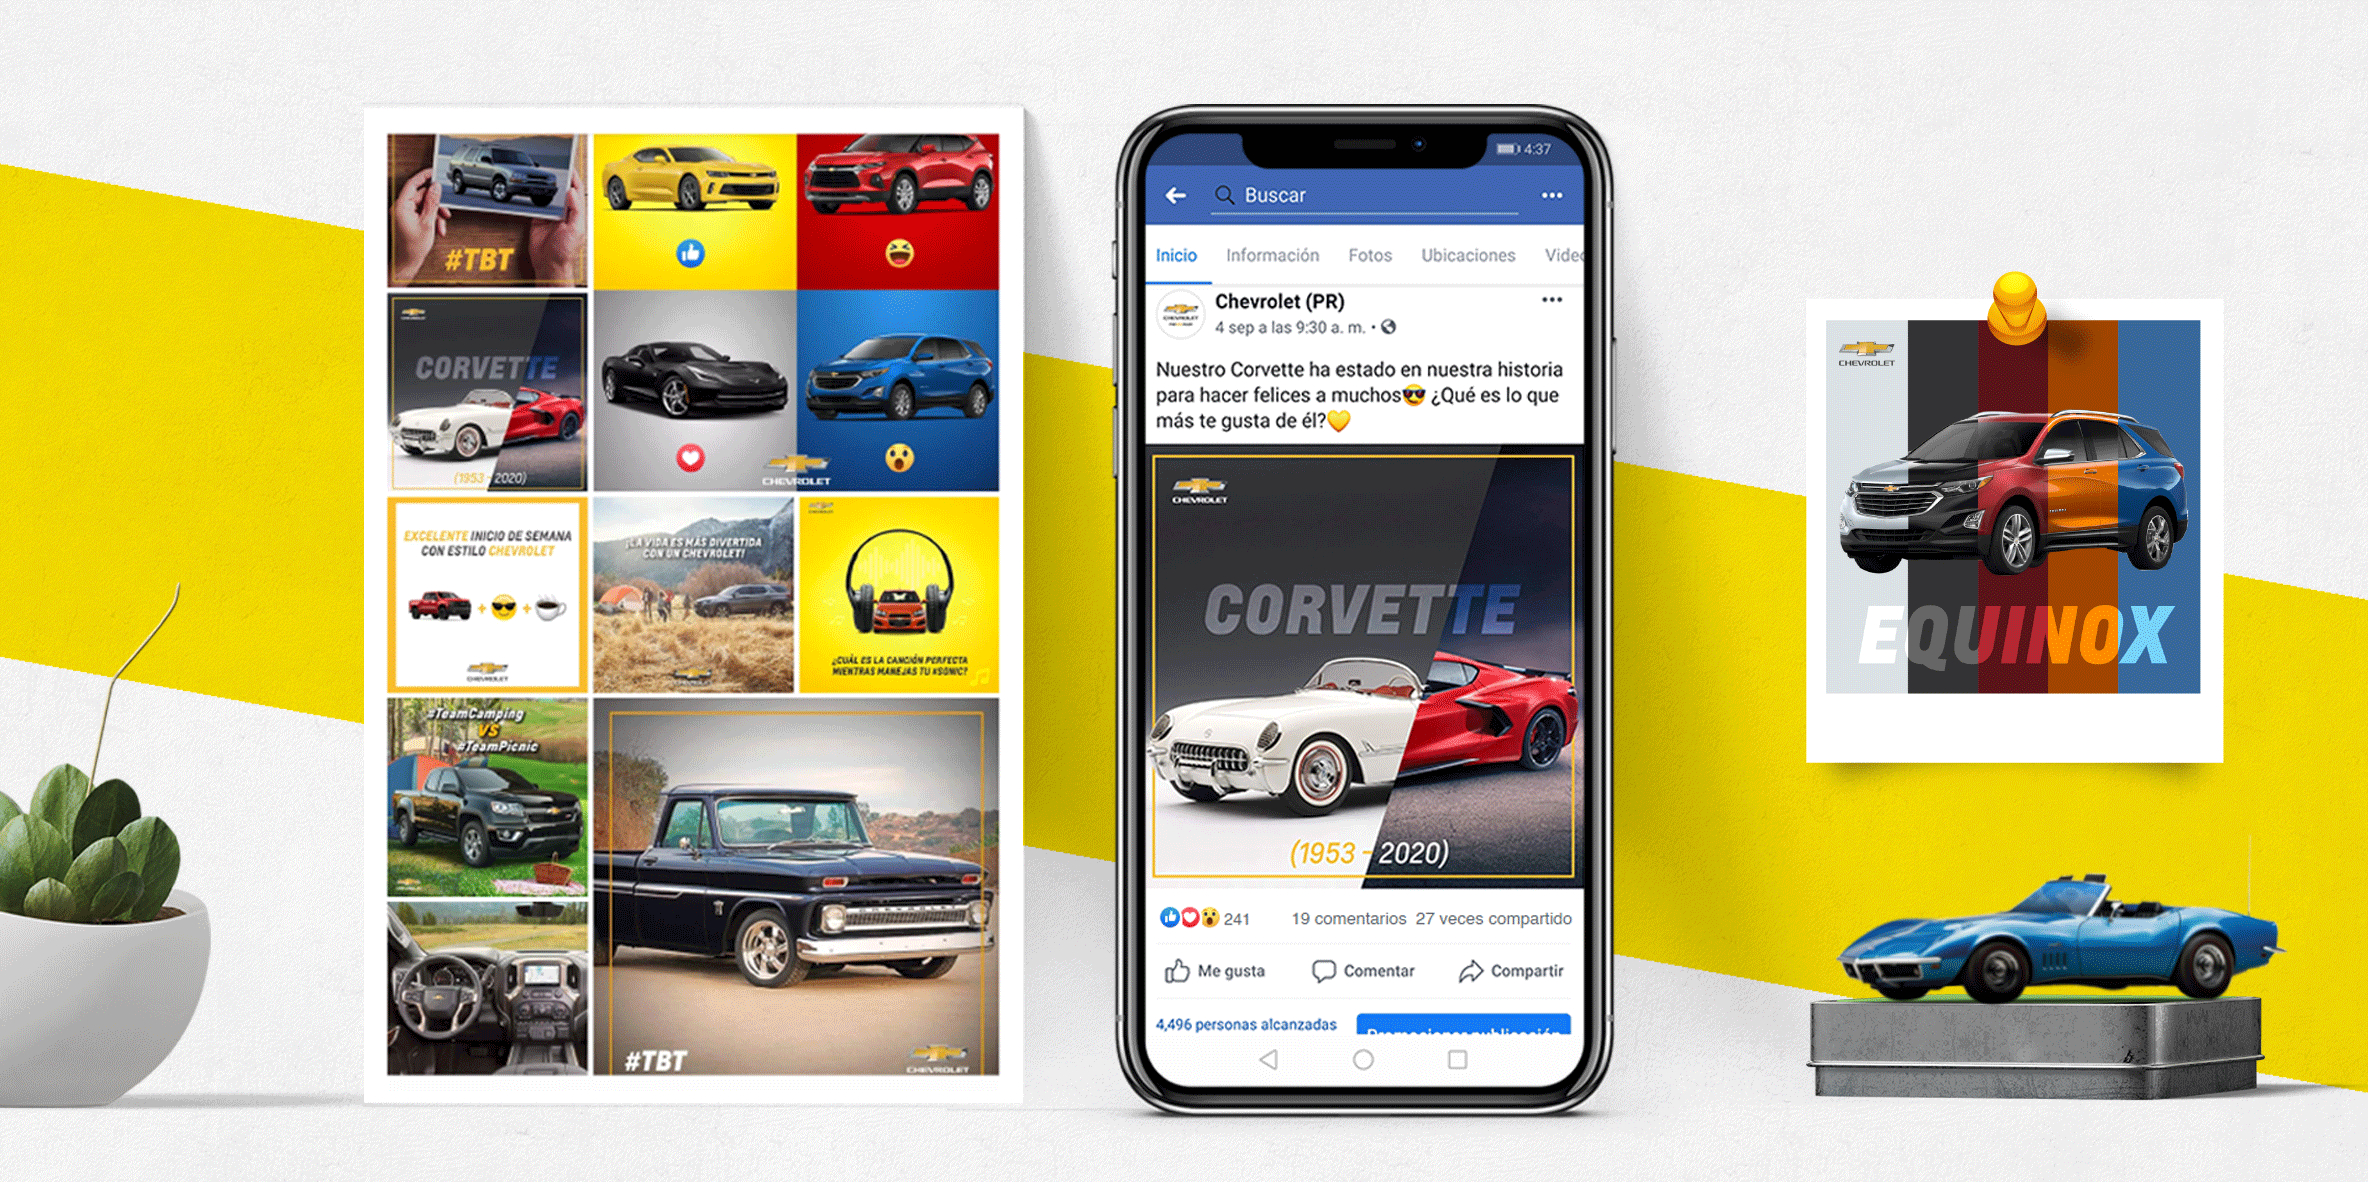 Mercadeo digital en Facebook para Chevrolet PR